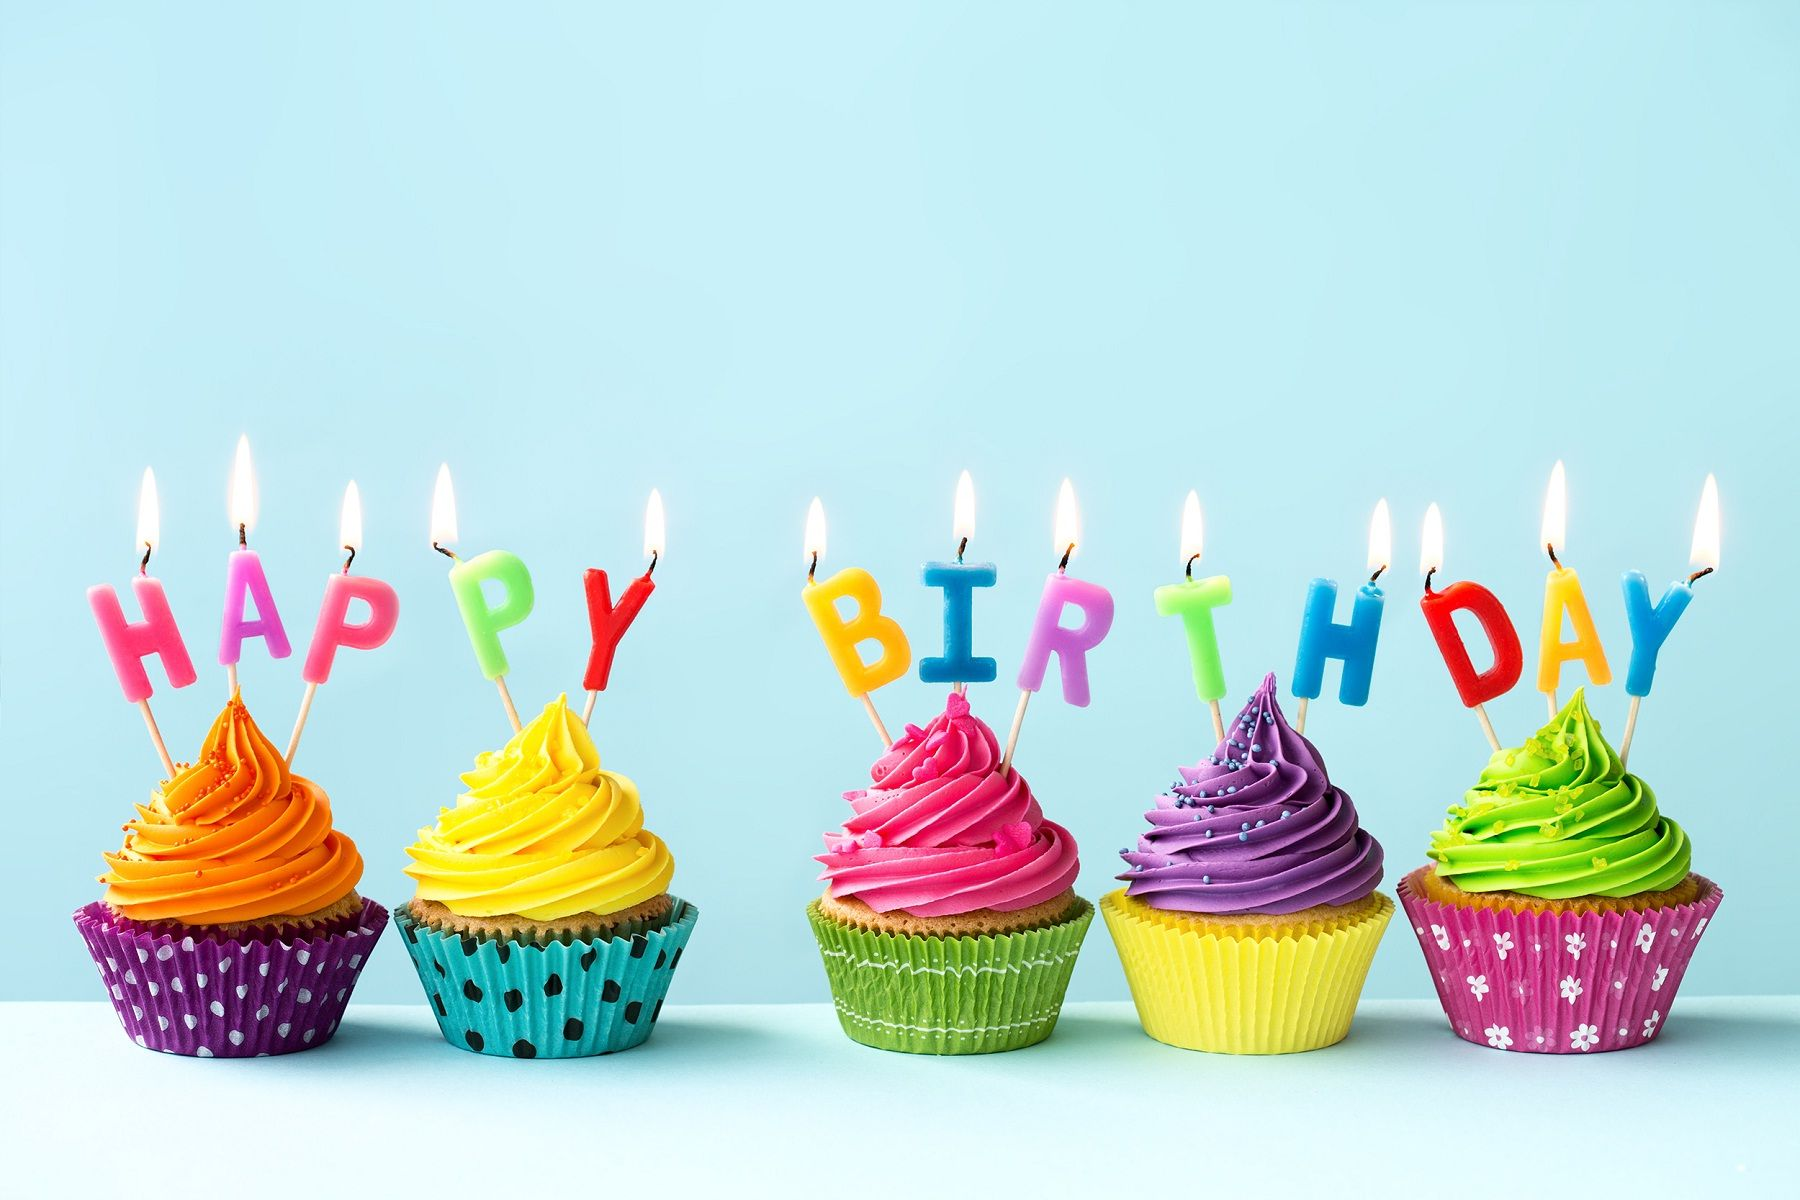 wallpaper birthday images ; 3a5d98ee2b9e6014b412508afede7c3b